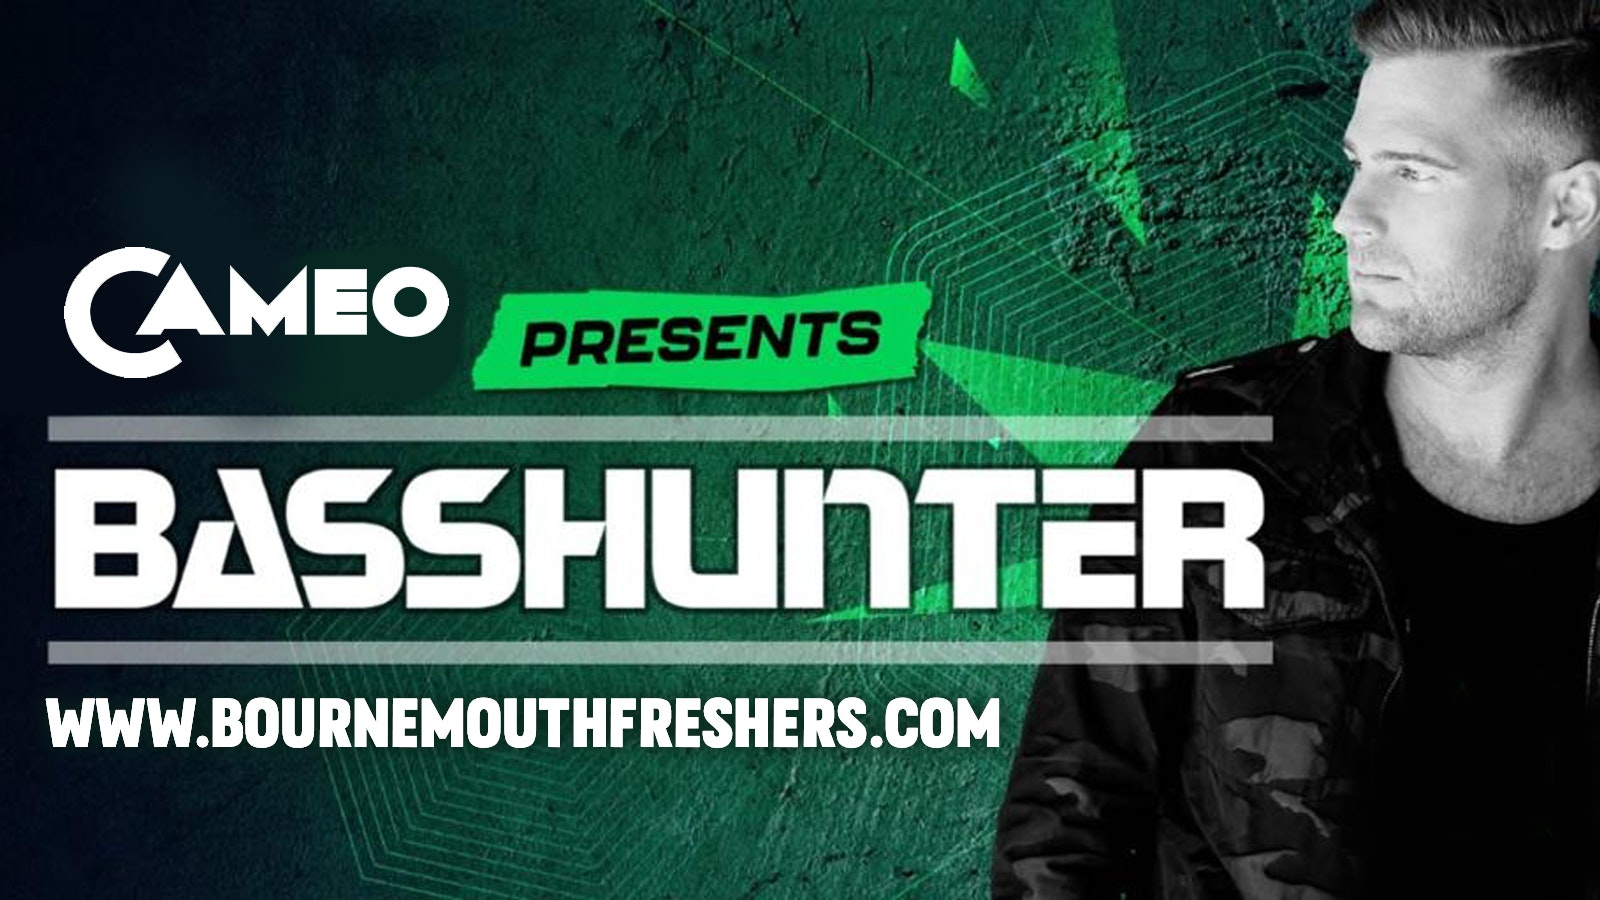 Cameo Presents Basshunter – Tuesday 5th October / Bournemouth's BIGGEST Freshers Rave  //// www.bournemouthfreshers.com